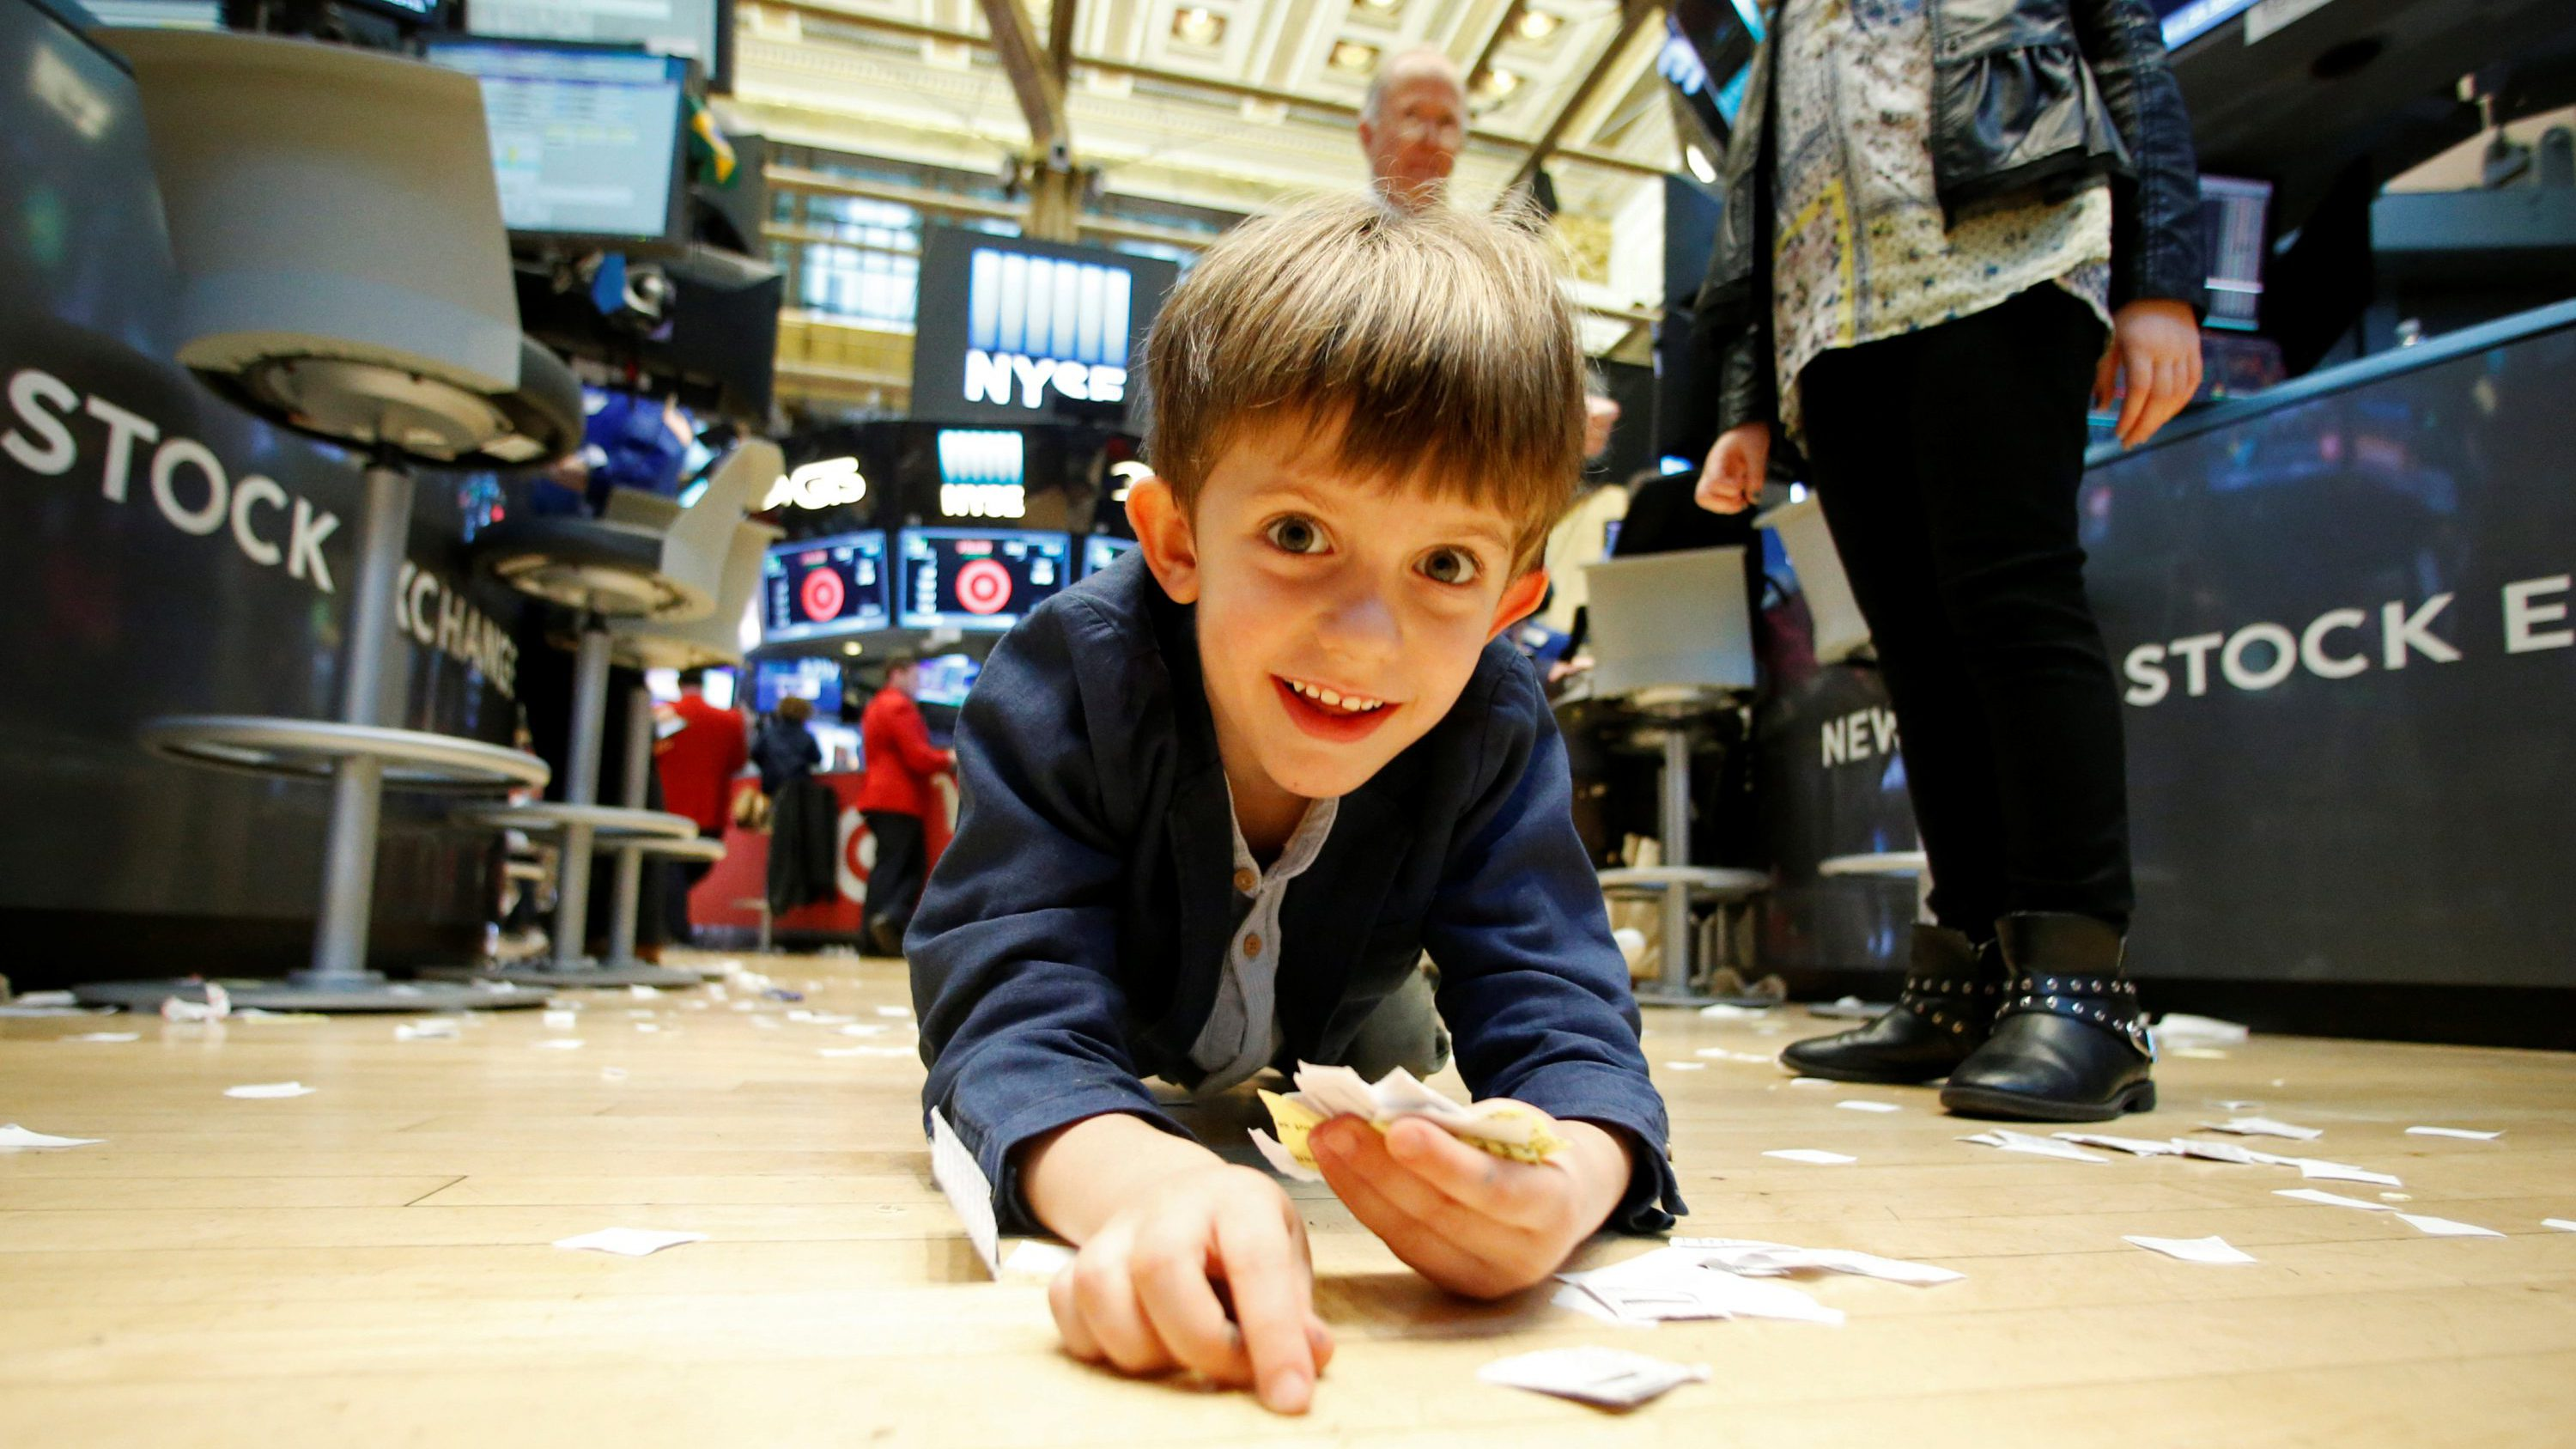 A boy plays during Kids' Day on the floor of the New York Stock Exchange (NYSE) in New York City, U.S., November 25, 2016.